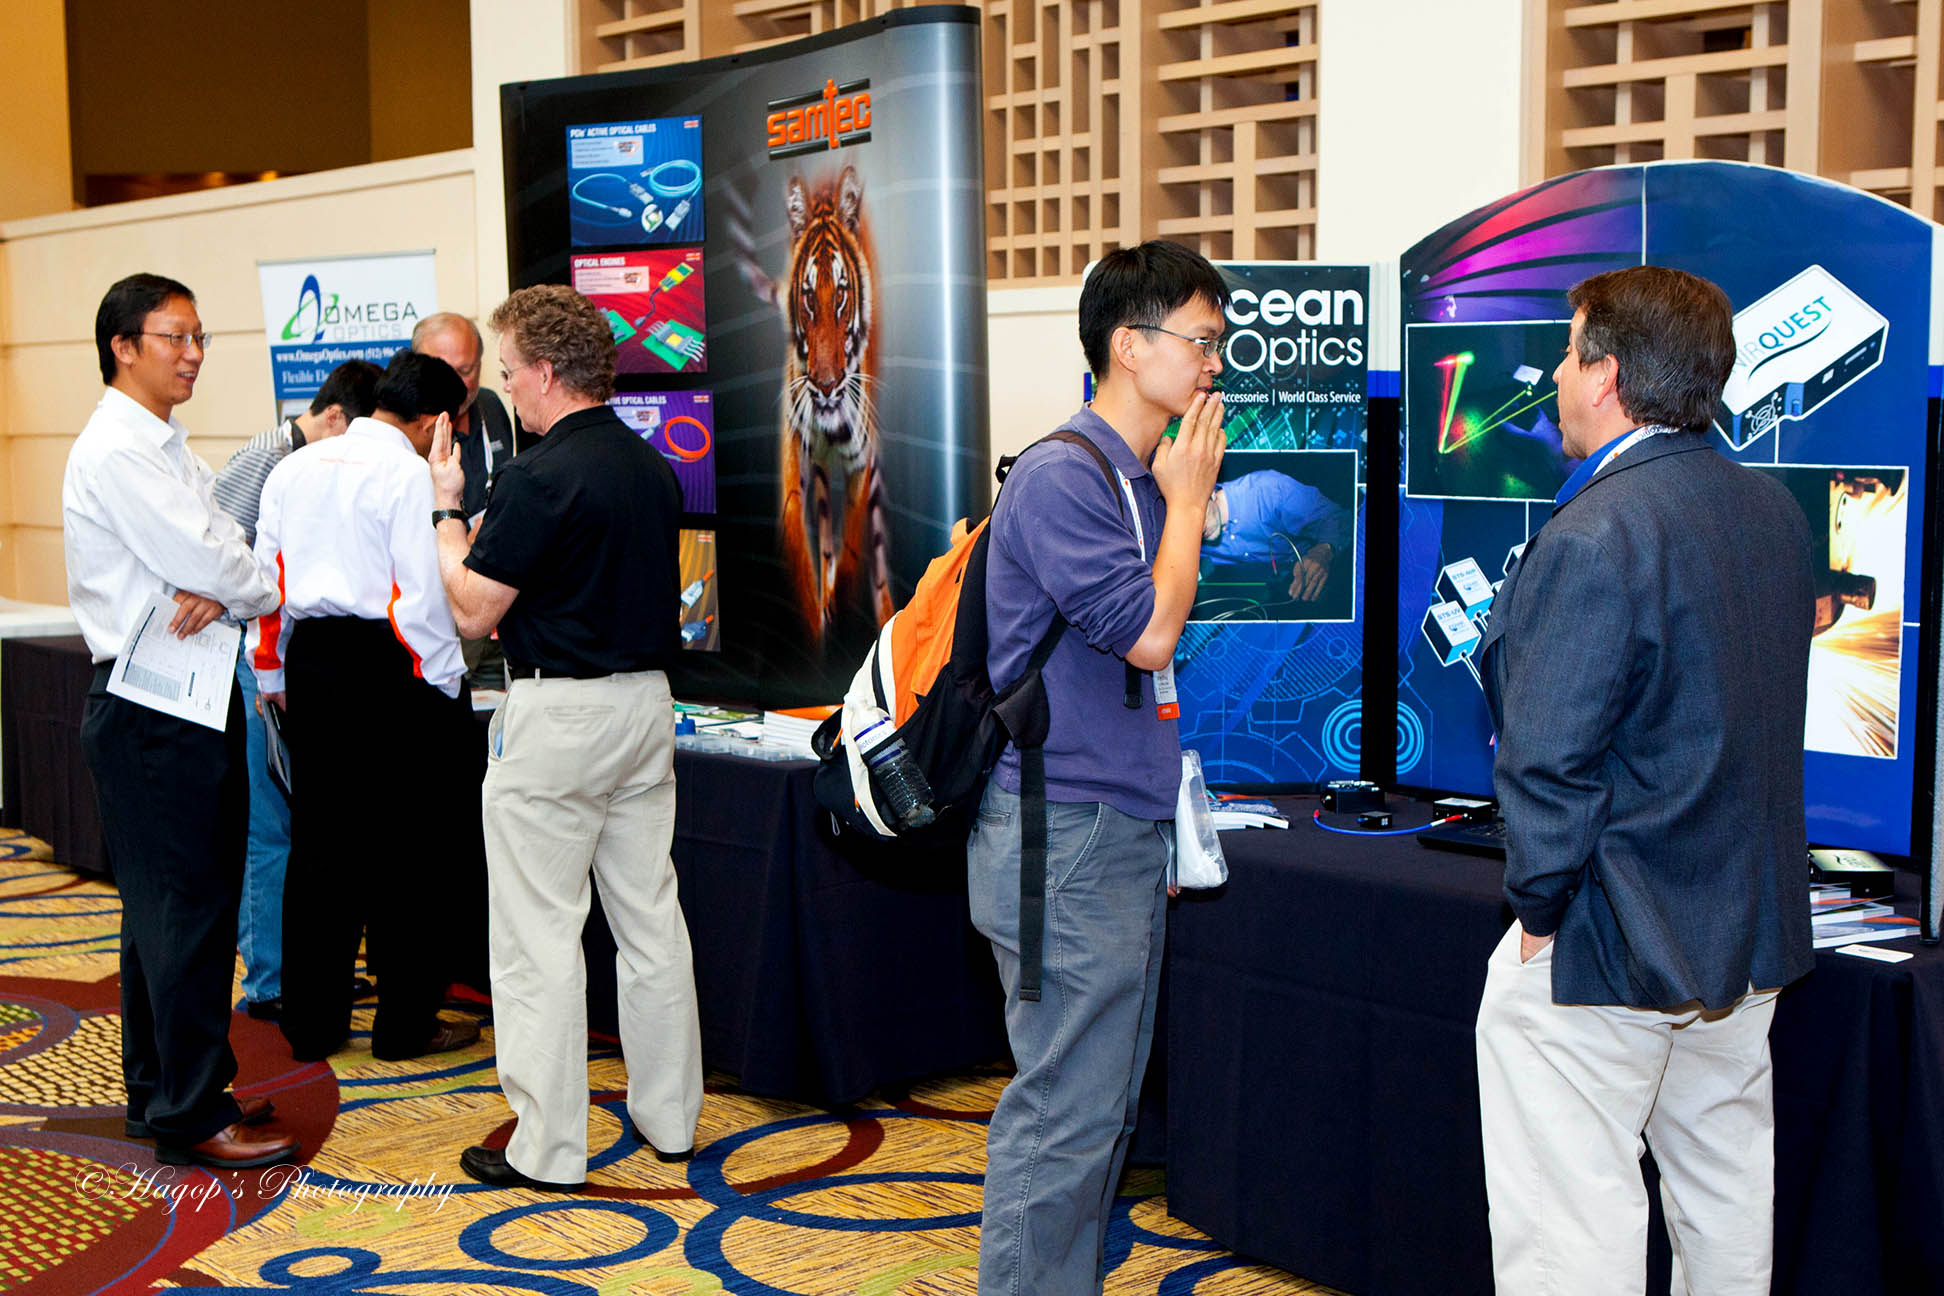 attendees visiting the vendors tables and displays